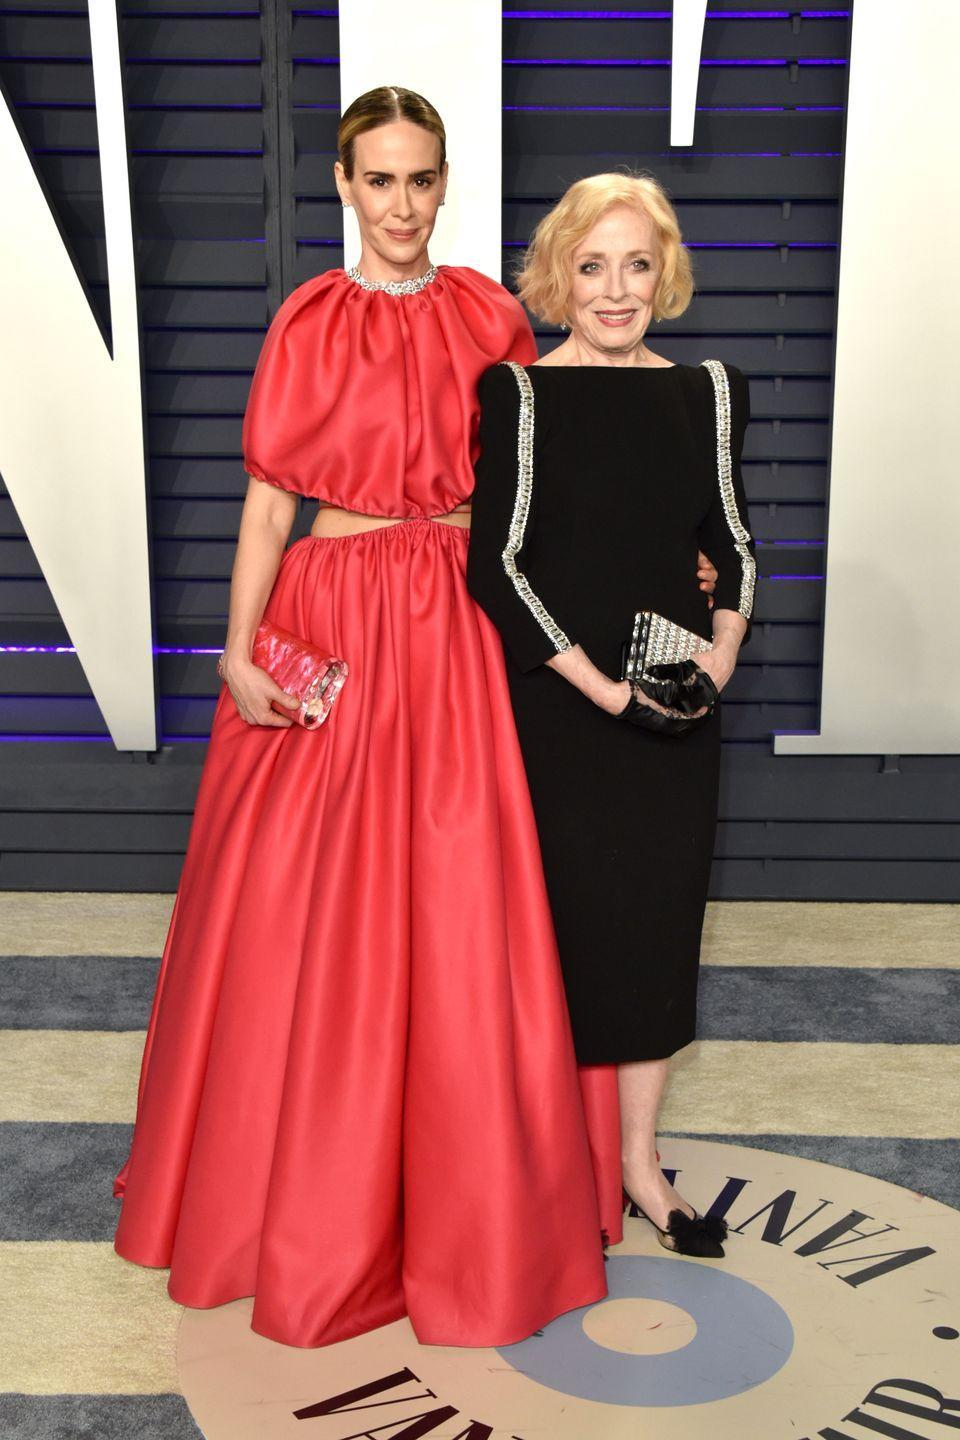 "<p>Rumors <a href=""http://www.etonline.com/news/177170_holland_taylor_is_dating_sarah_paulson"" rel=""nofollow noopener"" target=""_blank"" data-ylk=""slk:started swirling"" class=""link rapid-noclick-resp"">started swirling</a> in 2015 that <em>American Horror Story</em> star Sarah Paulson, then 41, was dating 72-year-old Holland Taylor. Paulson later confirmed their relationship in <a href=""https://www.nytimes.com/2016/03/03/fashion/sarah-paulson-opens-up-about-dating-older-women-holland-taylor.html"" rel=""nofollow noopener"" target=""_blank"" data-ylk=""slk:an interview"" class=""link rapid-noclick-resp"">an interview</a> with the <em>New York Times</em> in 2016, stating: ""What I can say absolutely is that I am in love, and that person happens to be Holland Taylor.""</p>"